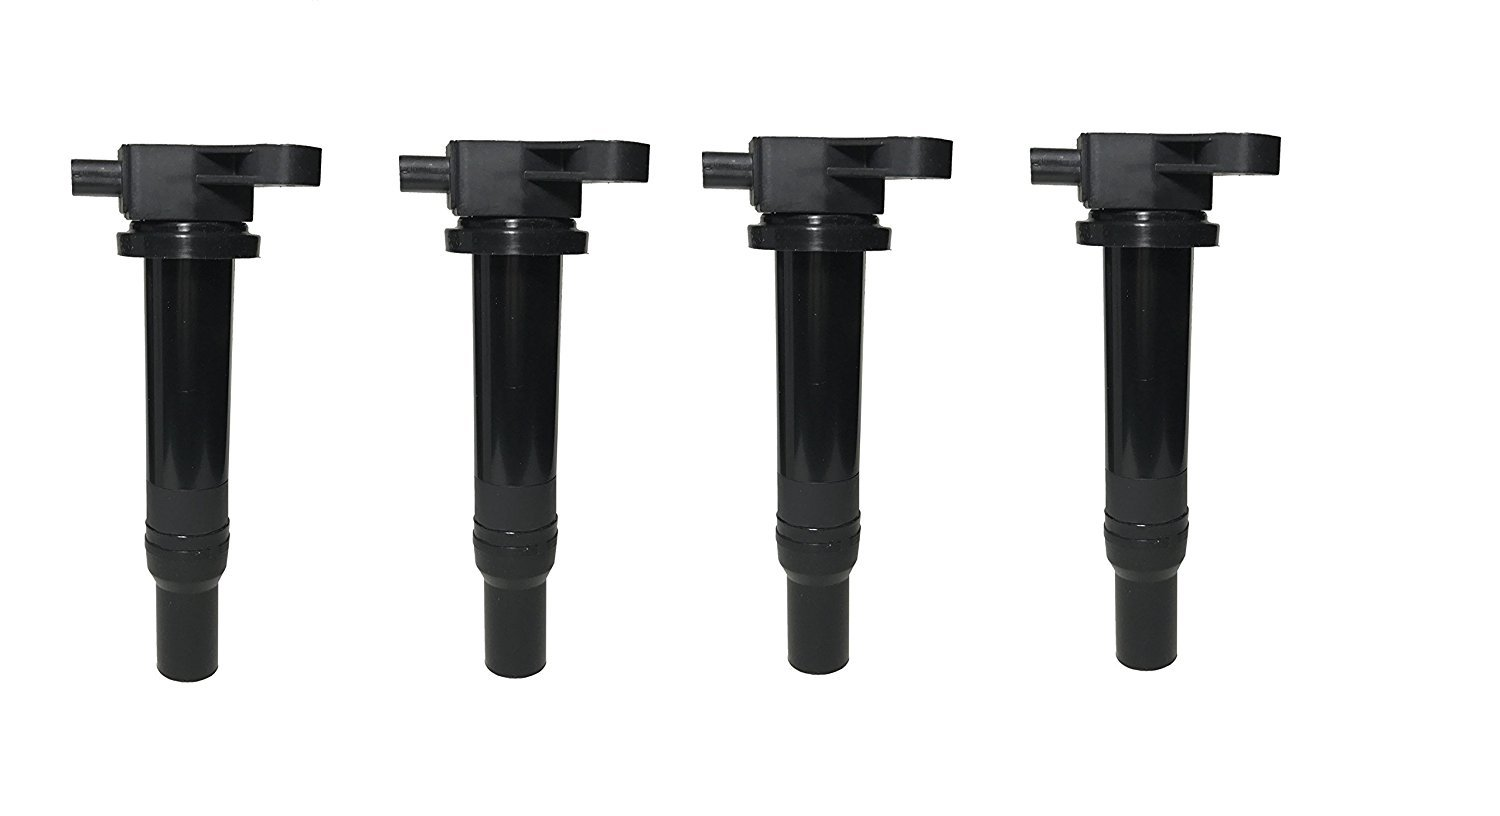 Amazon.com: Ignition Coil Pack Set of 4 - Fits Hyundai Accent, Kia Rio -  Replaces #27301-26640 - Ignition Coil Pack Fits 2010 Hyundai Accent, 2009  Hyundai ...